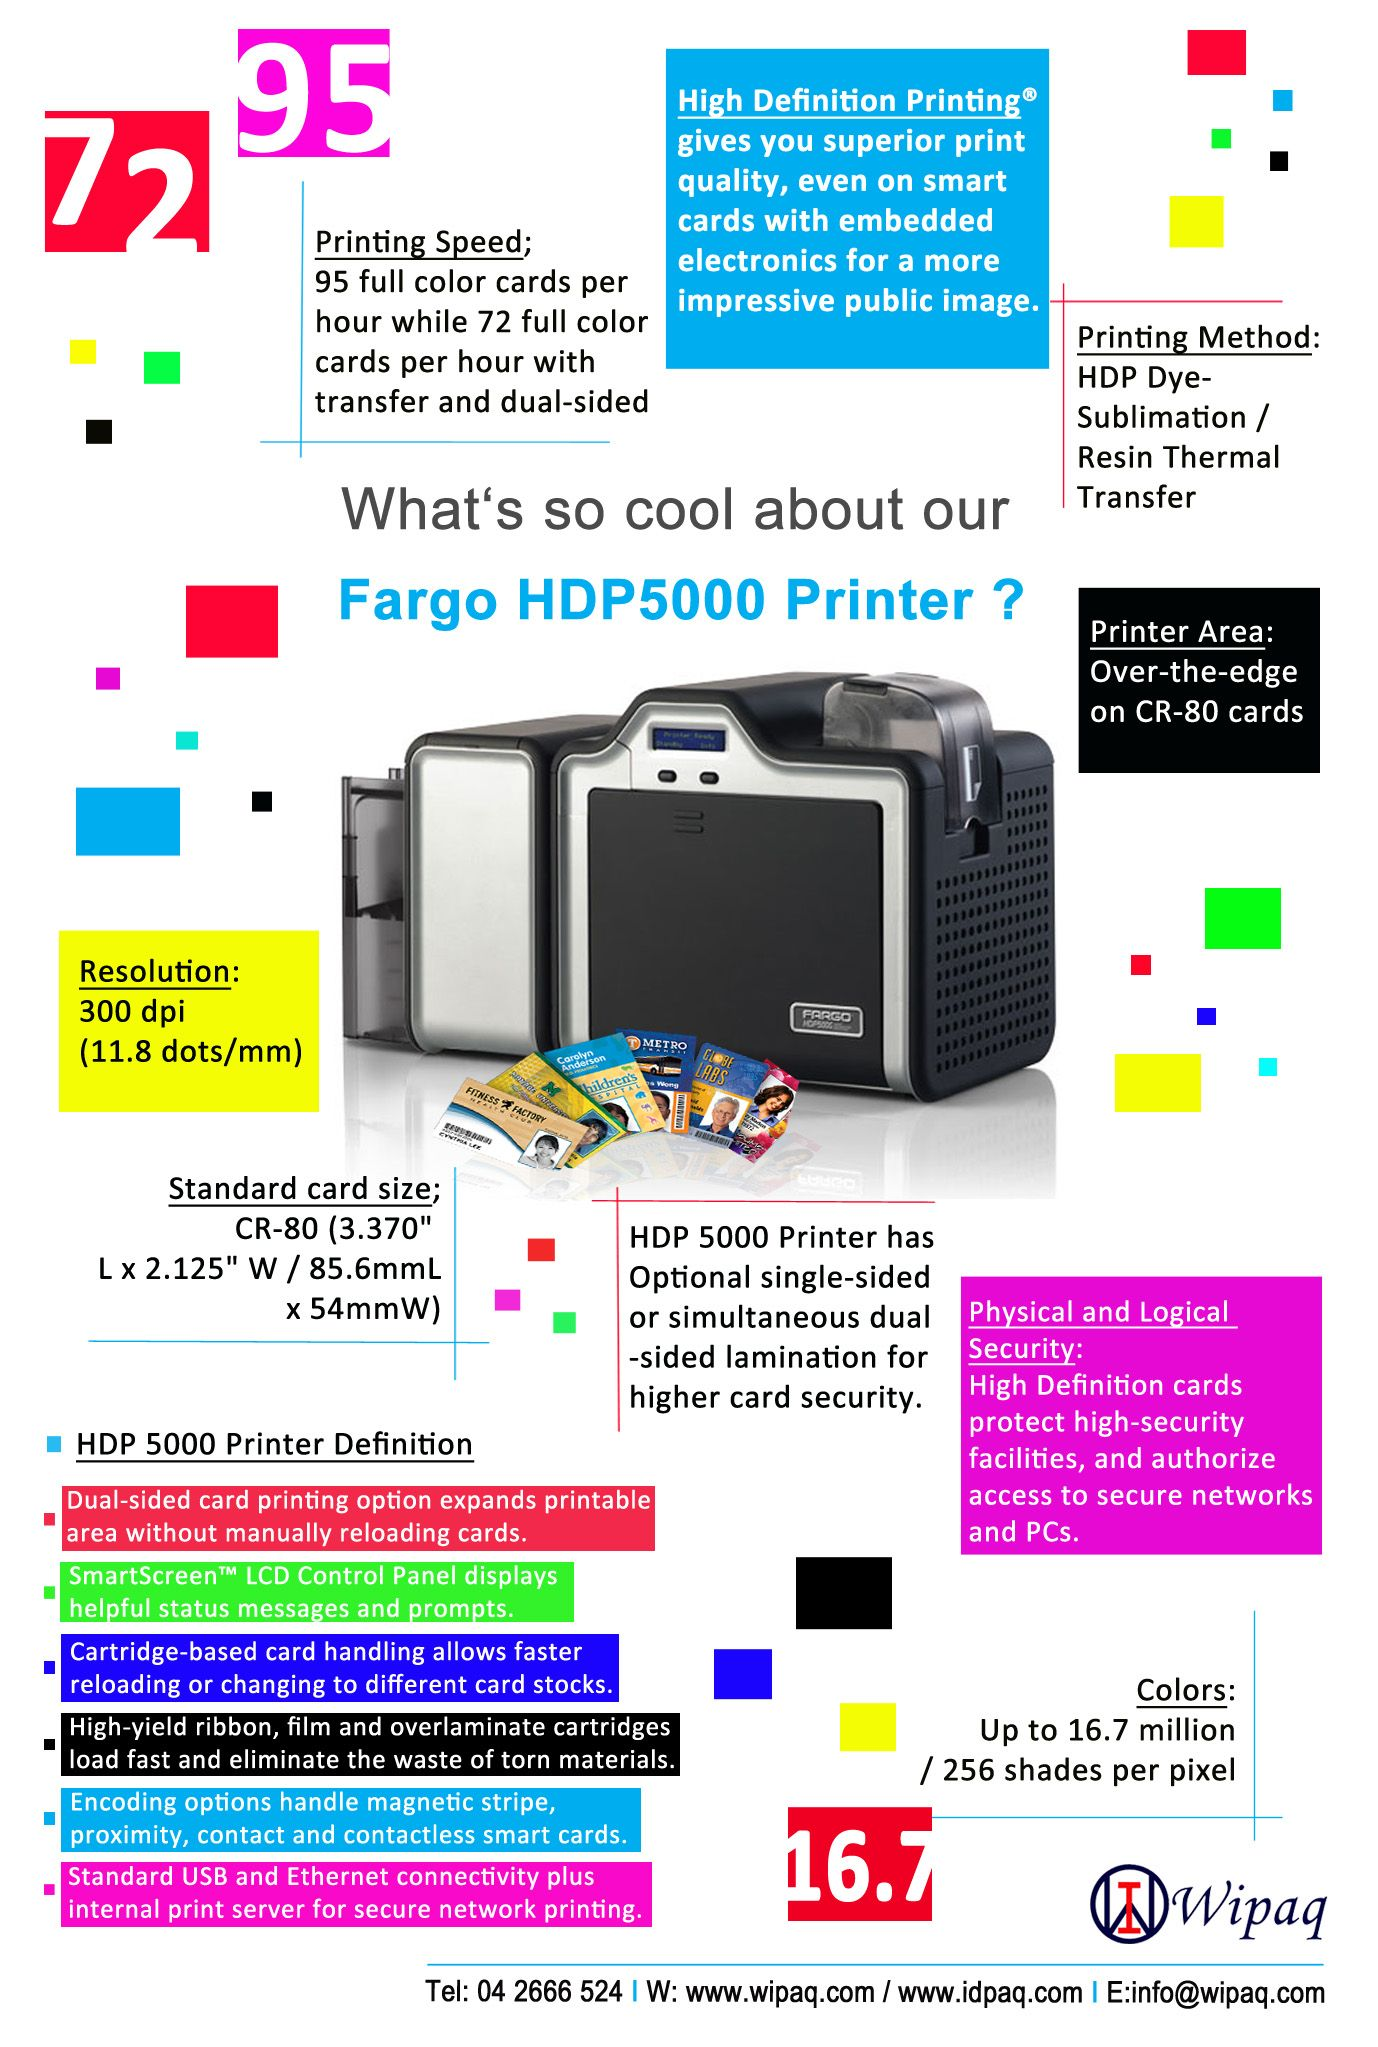 Print Your Own Id Card With Excellent Clarity  Fargo Id